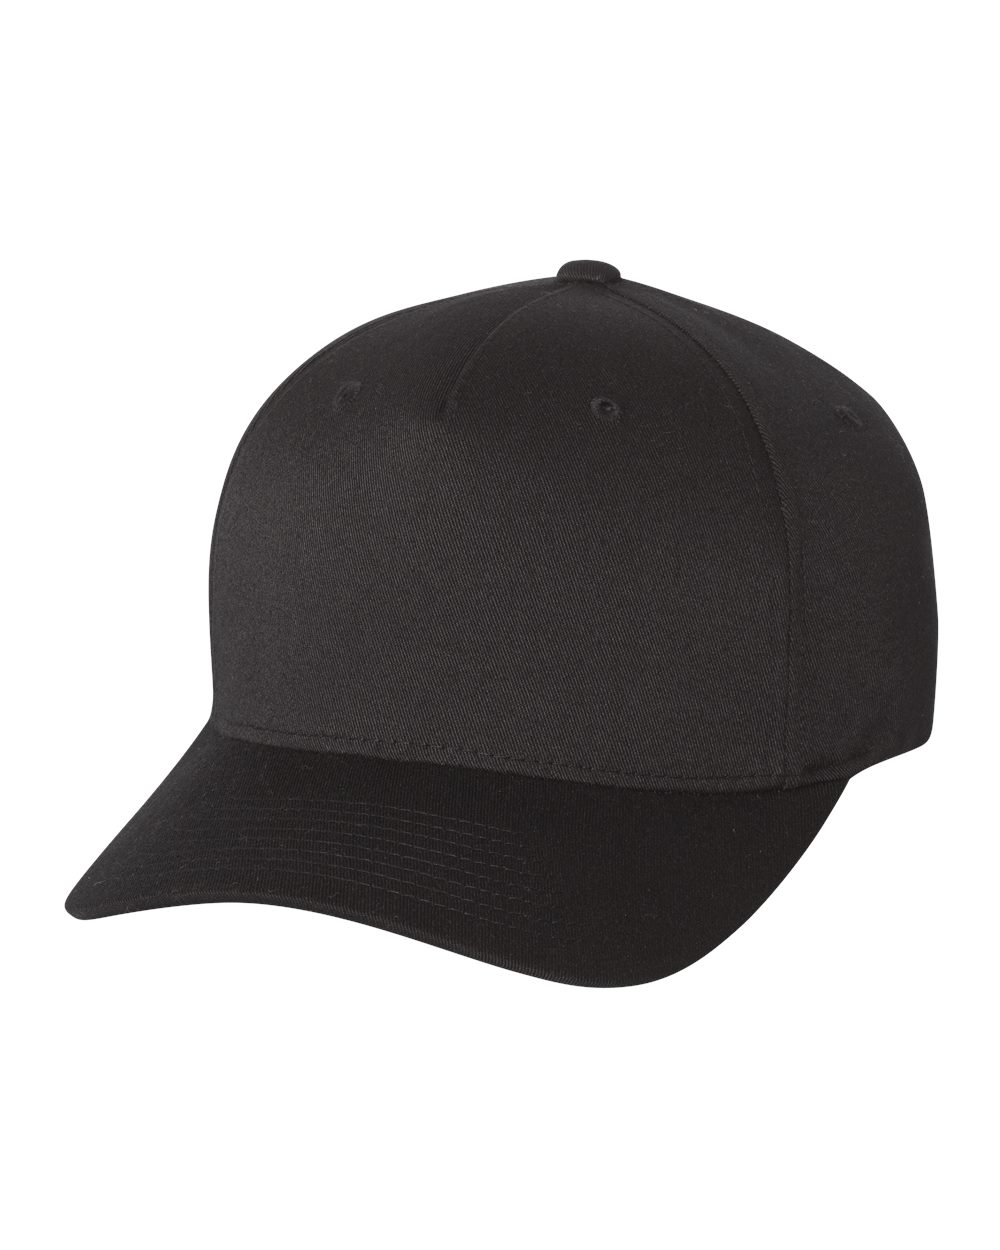 Flexfit 6560 - Five Panel Cap